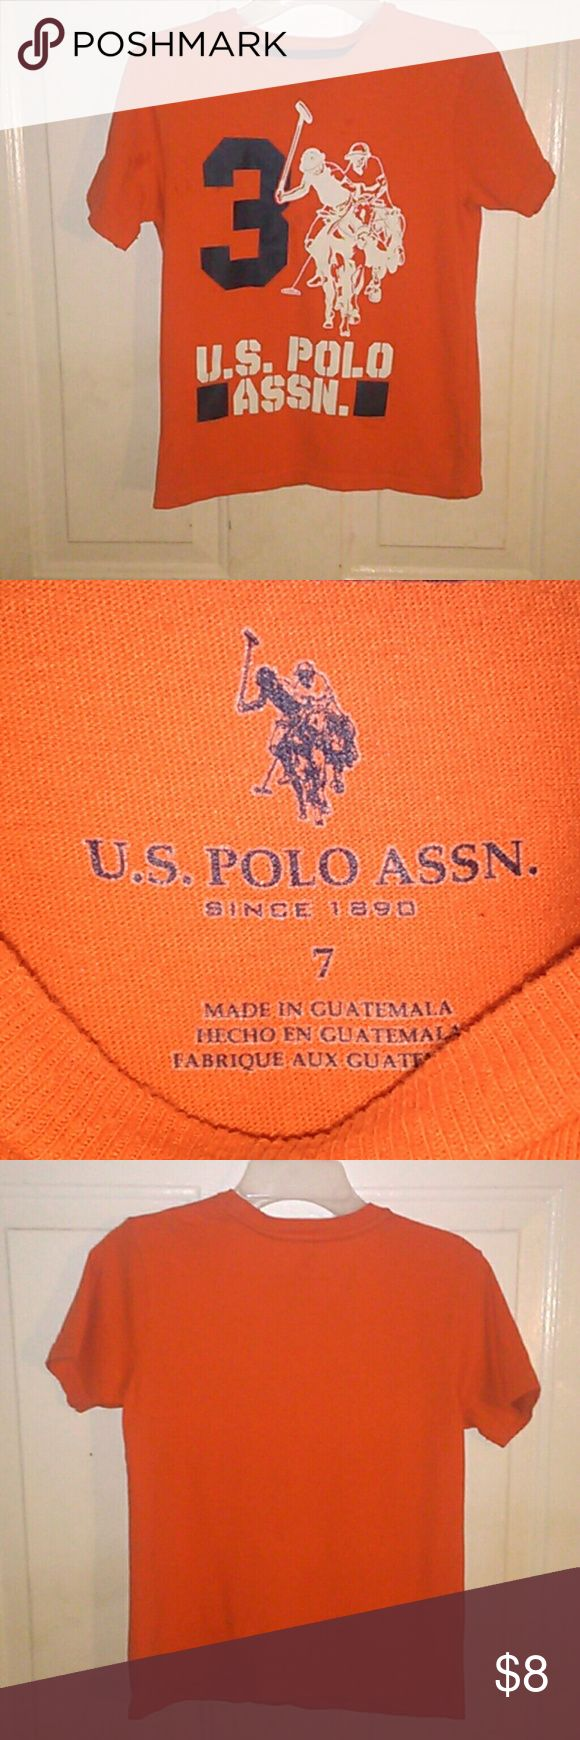 Boys polo tee Shirt Boys polo tee shirt size 7 perfect condition the water marks are from me steaming it Shirts & Tops Tees - Short Sleeve